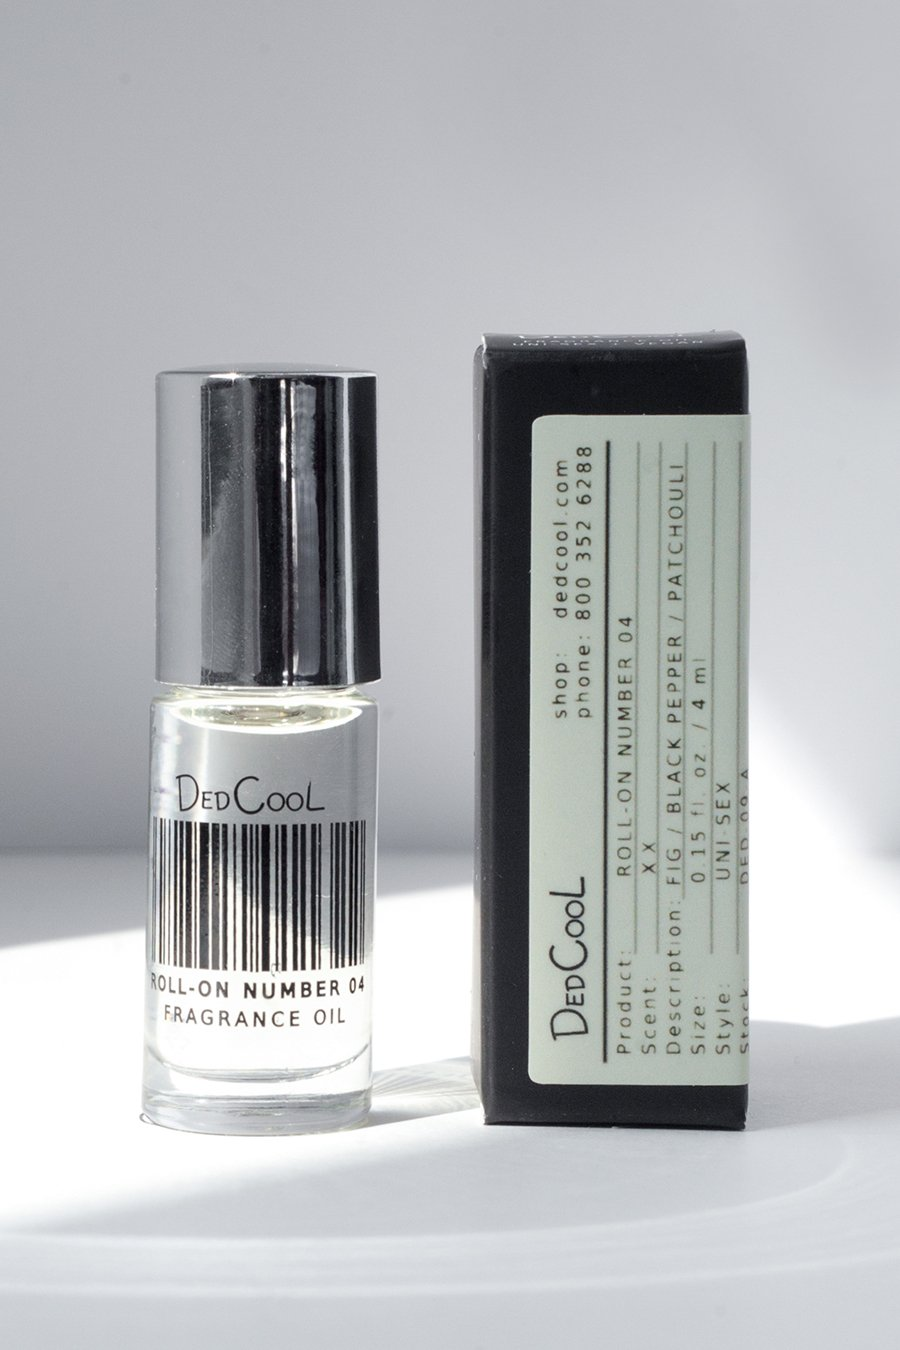 DedCool Roll-On 04. Uni-Sex, Non-Toxic, Vegan, Natural, Clean, Safe, Organic Fragrance Oil. Made in Los Angeles.